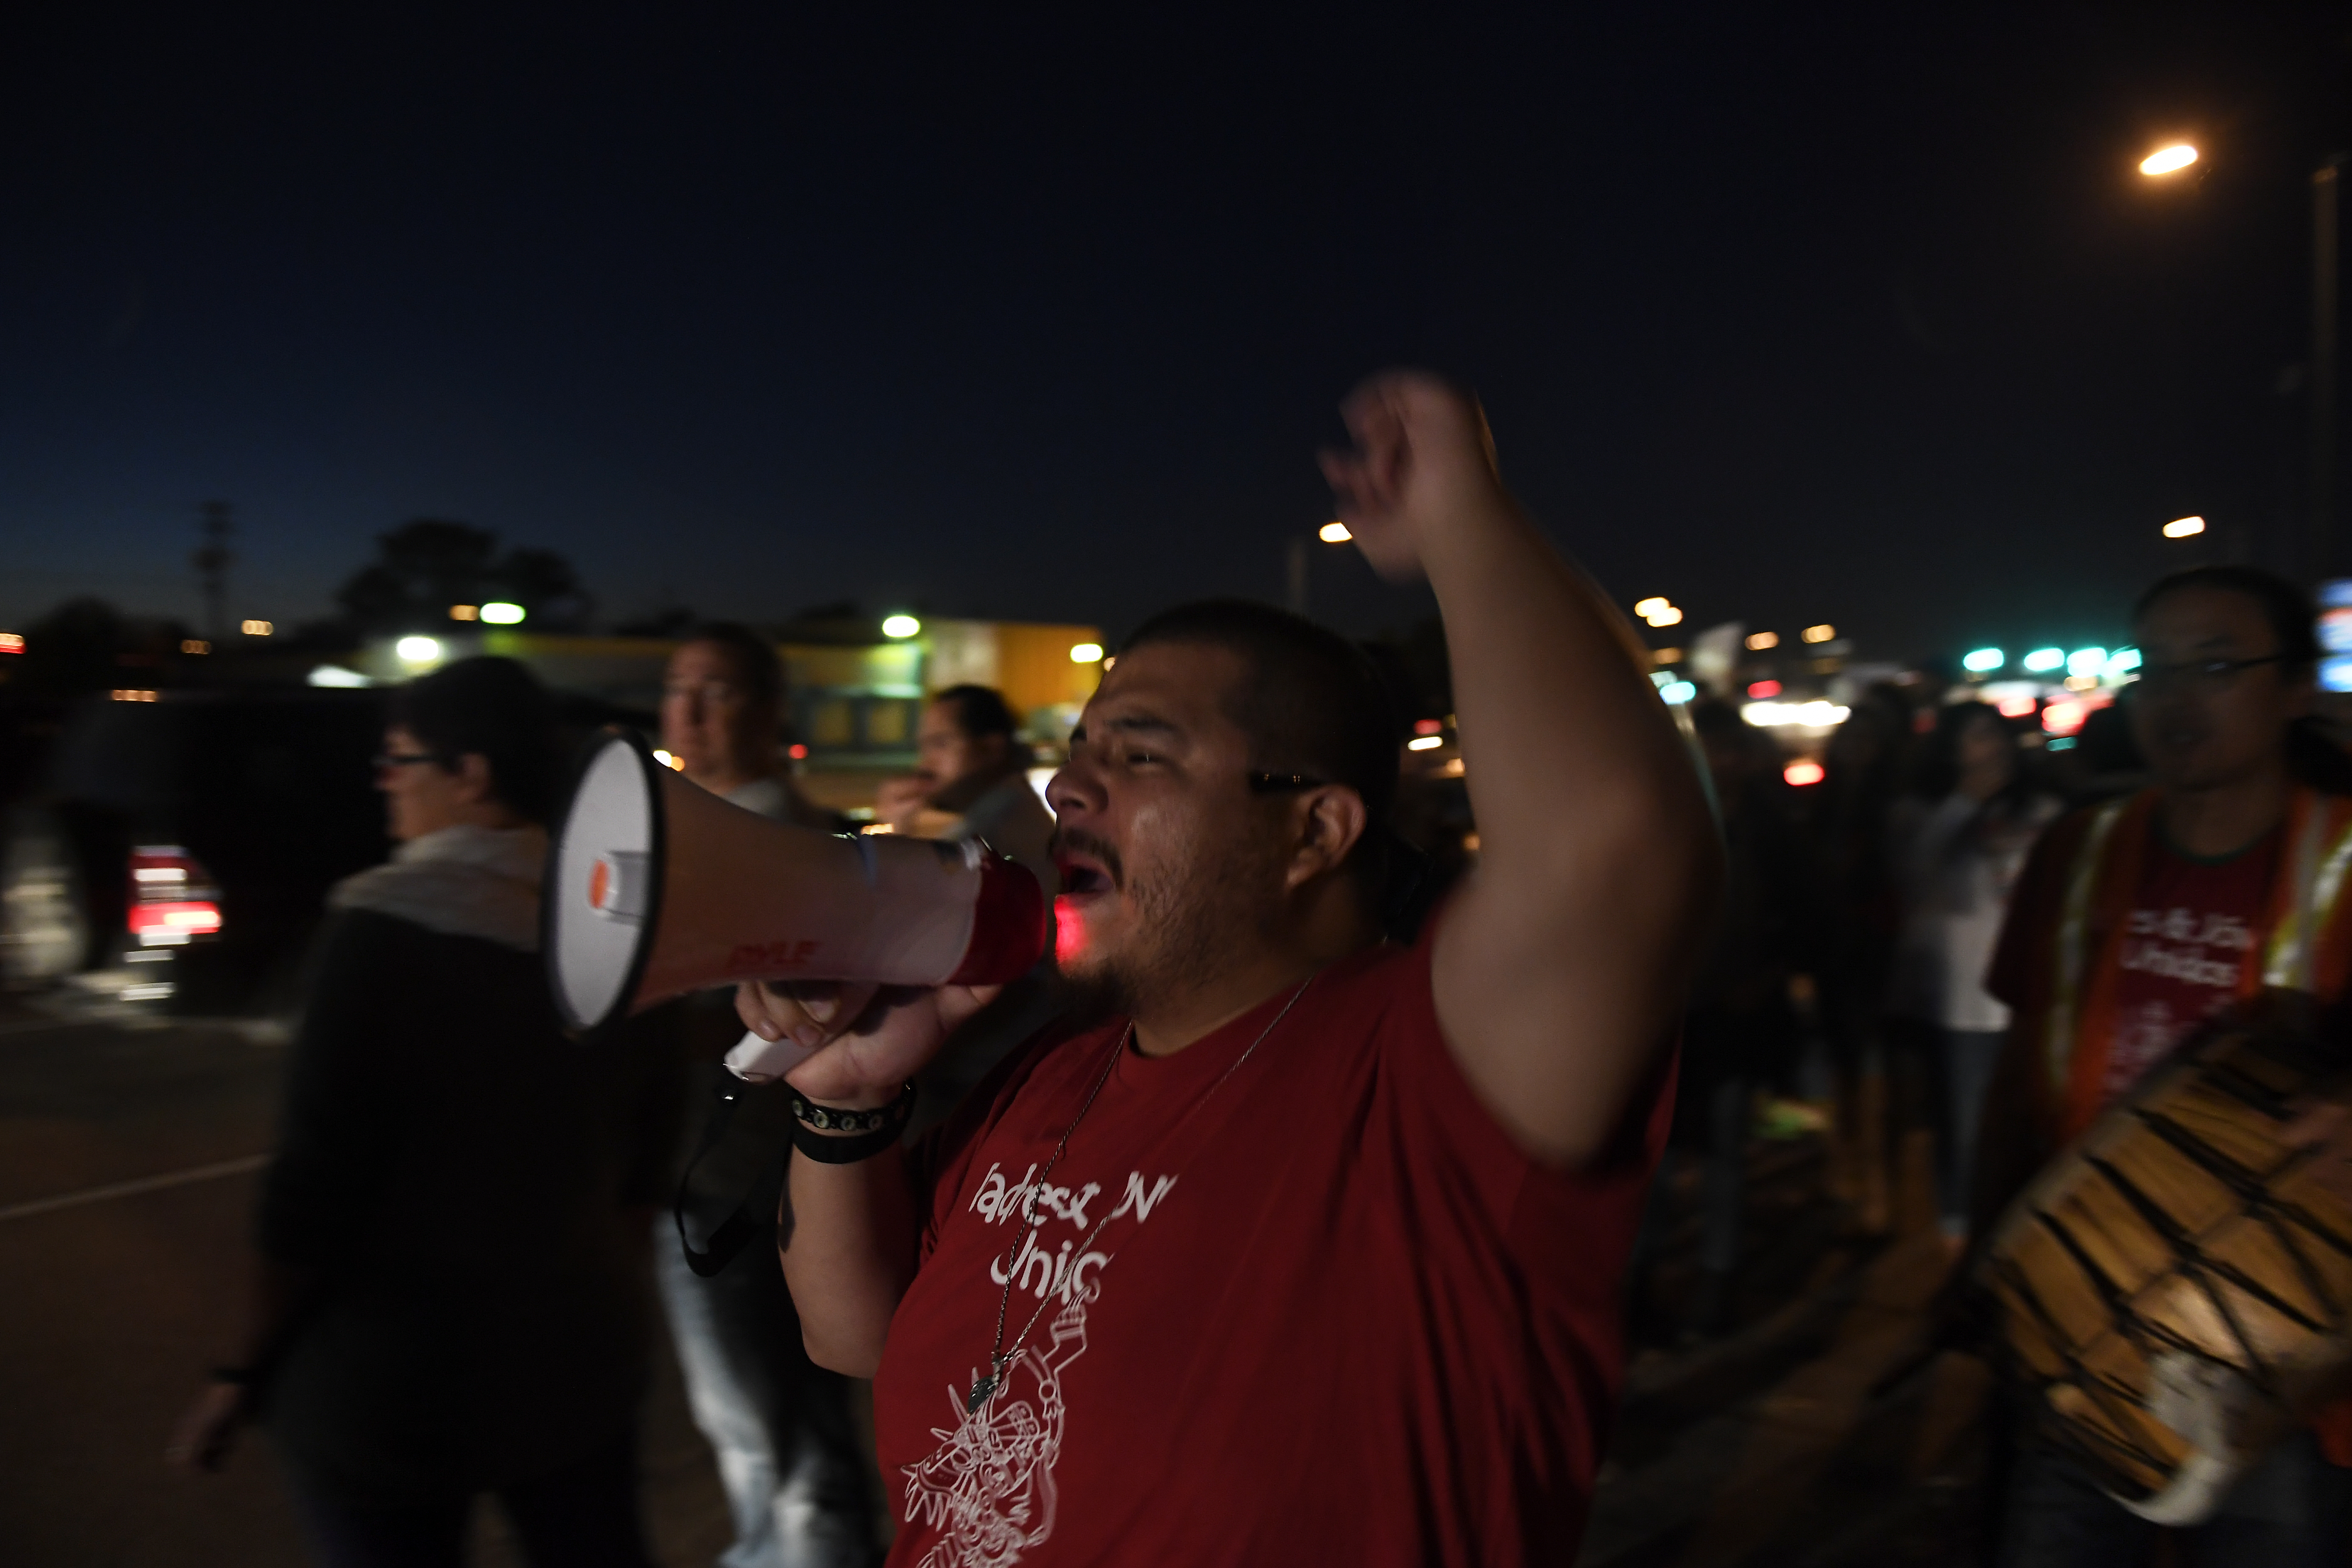 Juan Evangelista, youth organizer with Padres & J—venes Unidos leads chants at a Trump protest rally along Federal Blvd and 5th at East Barnum Park in Denver,CO November 09, 2016. Joe Amon, The Denver Post